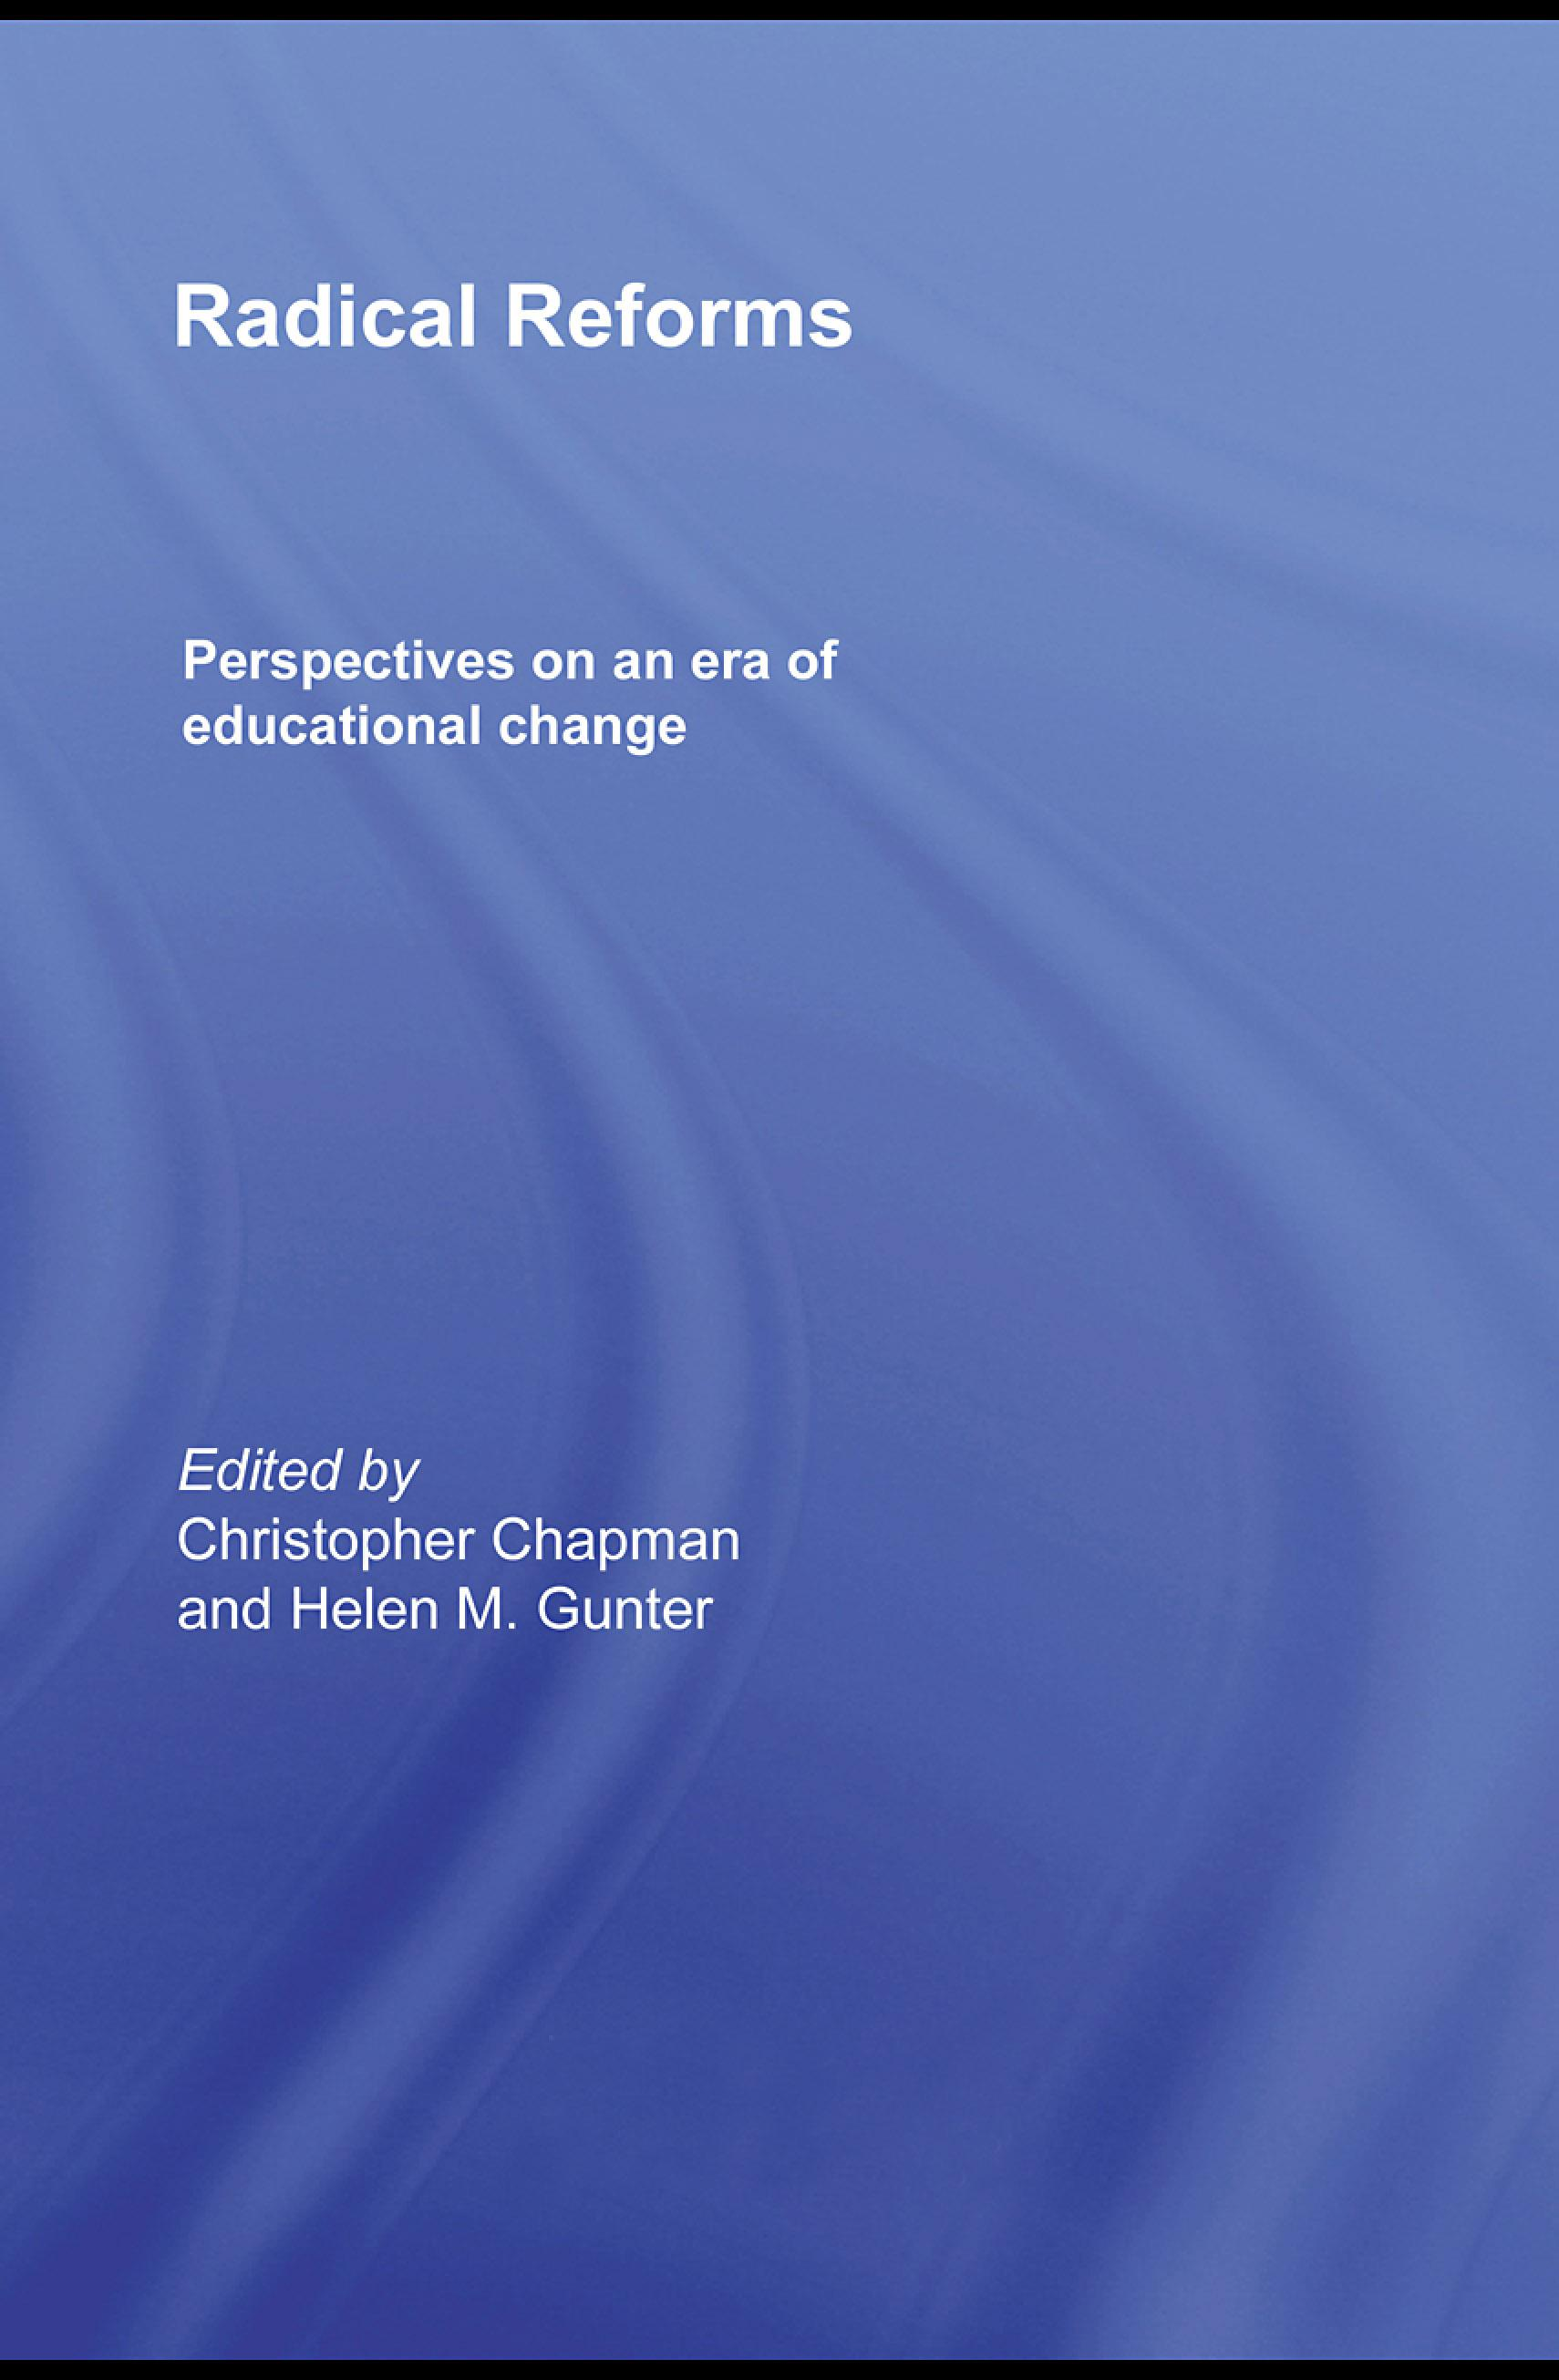 Radical Reforms: Perspectives on an era of educational change EB9780203884119